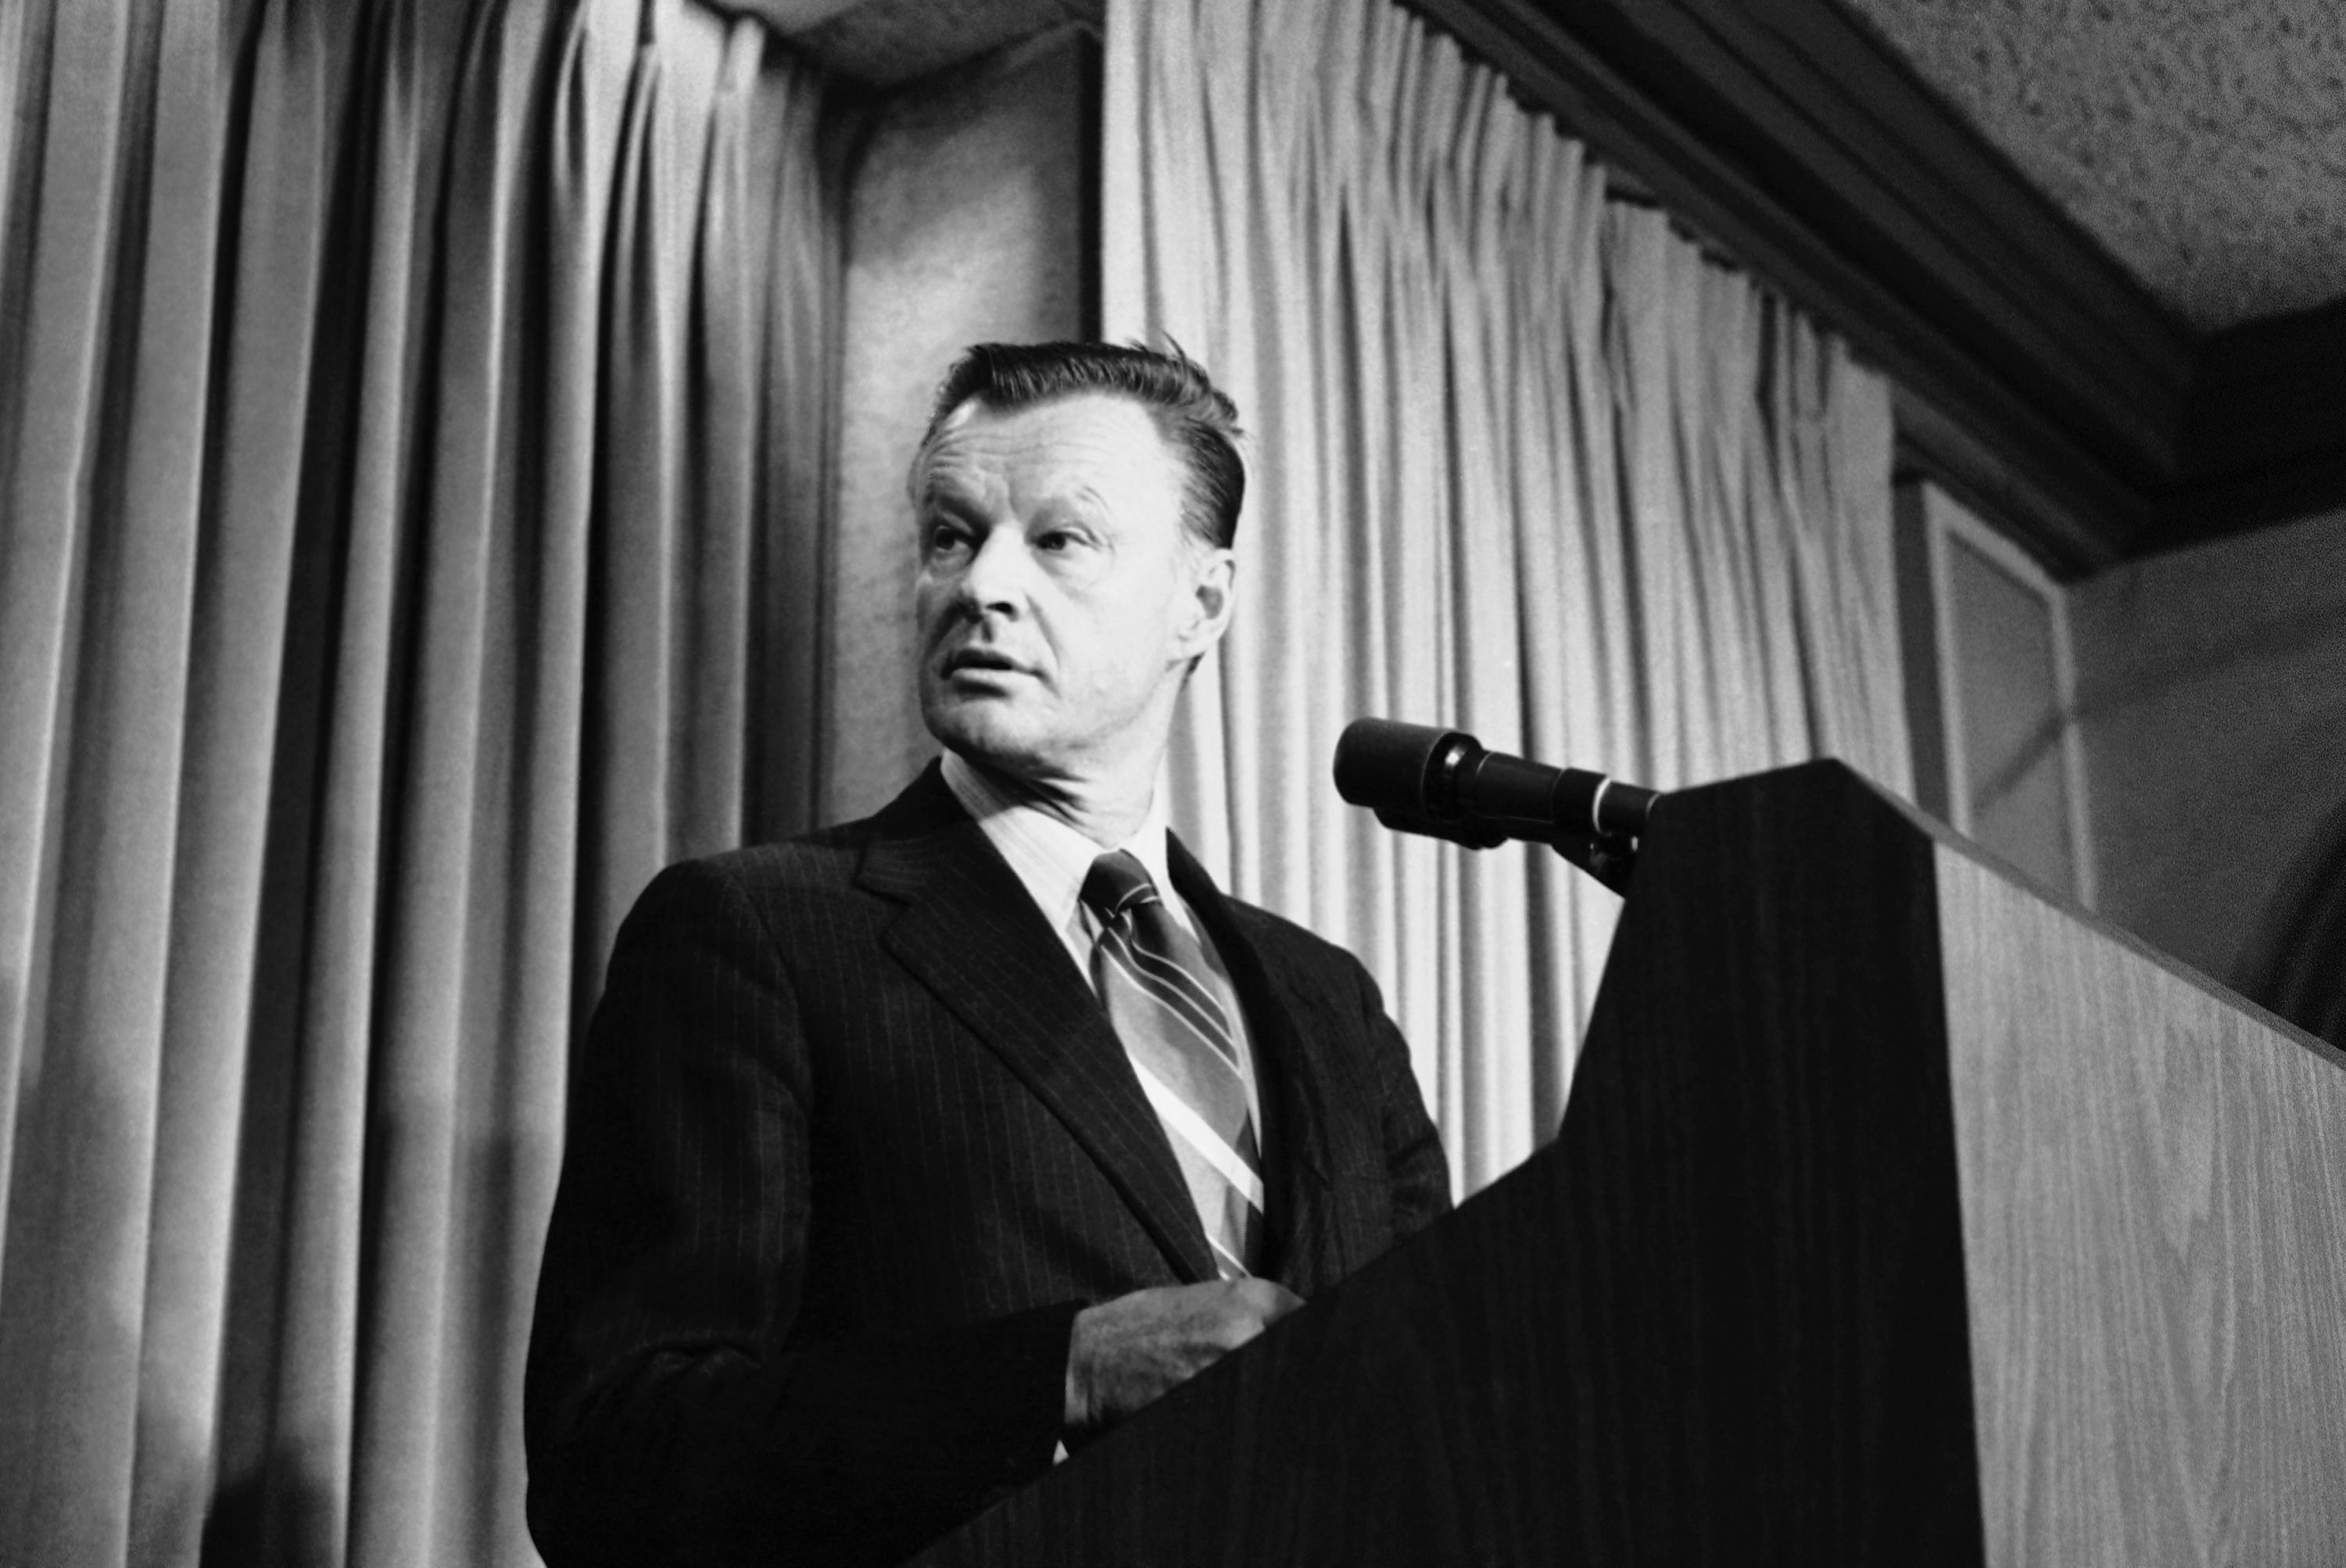 National Security Affairs Adviser Zbigniew Brzezinski tells a Washington news briefing in Washington,, Friday, May 11, 1979 that President Carter and Soviet President Leonid Brezhnev will meet from June 15 to 18 in Vienna to sign their new Salt II treaty